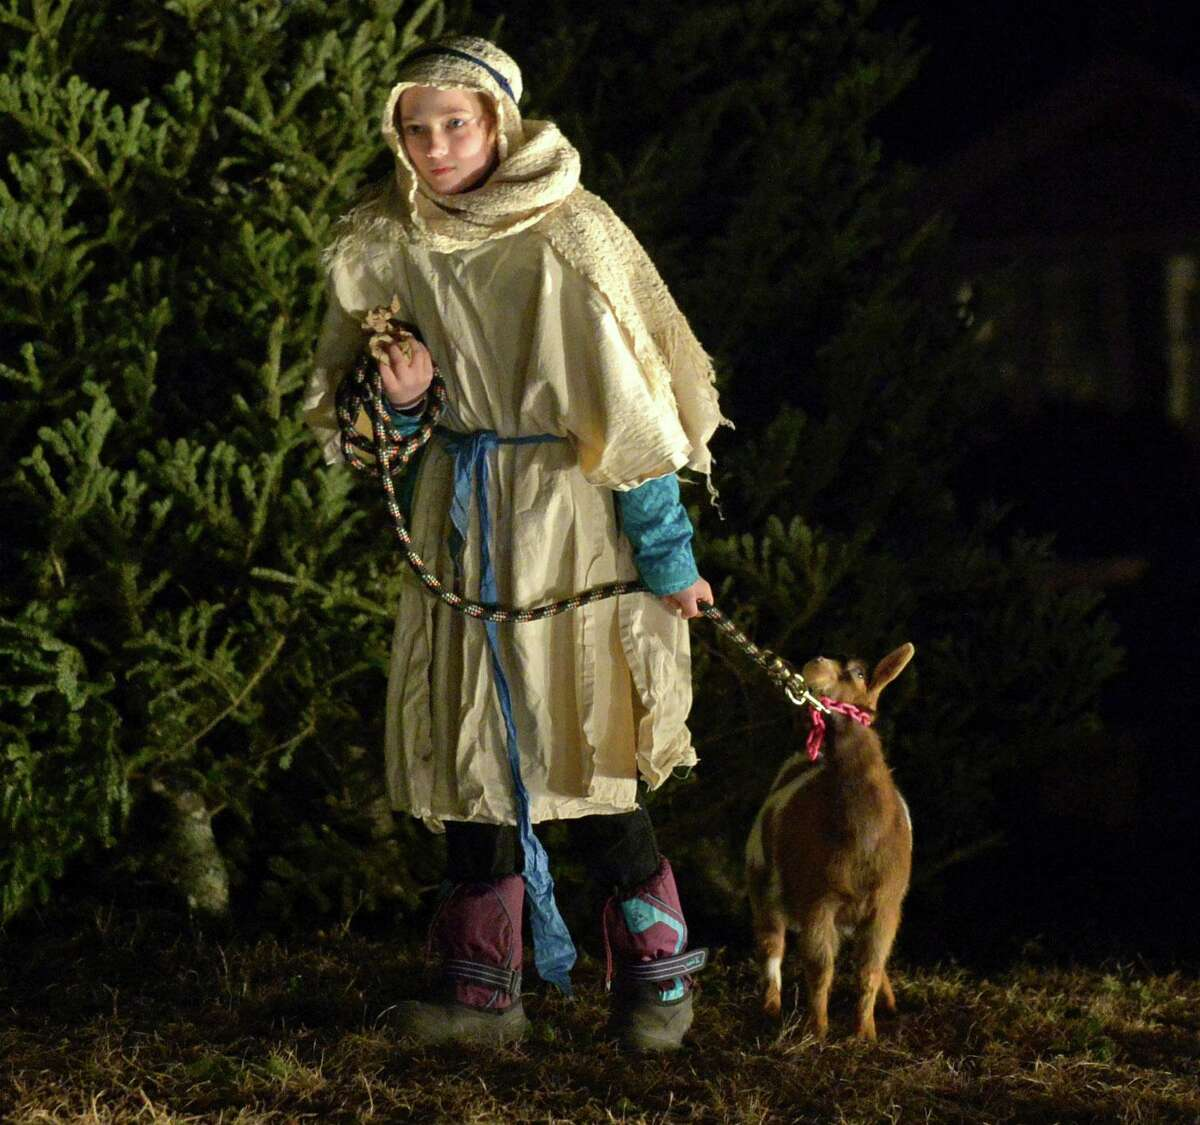 Wilton Presbyterian Church and St. Matthew's Episcopal Church will present a drive-by living nativity Sunday, Dec. 13, from 3 to 5 p.m., at WEPCO, 48 New Canaan Road.